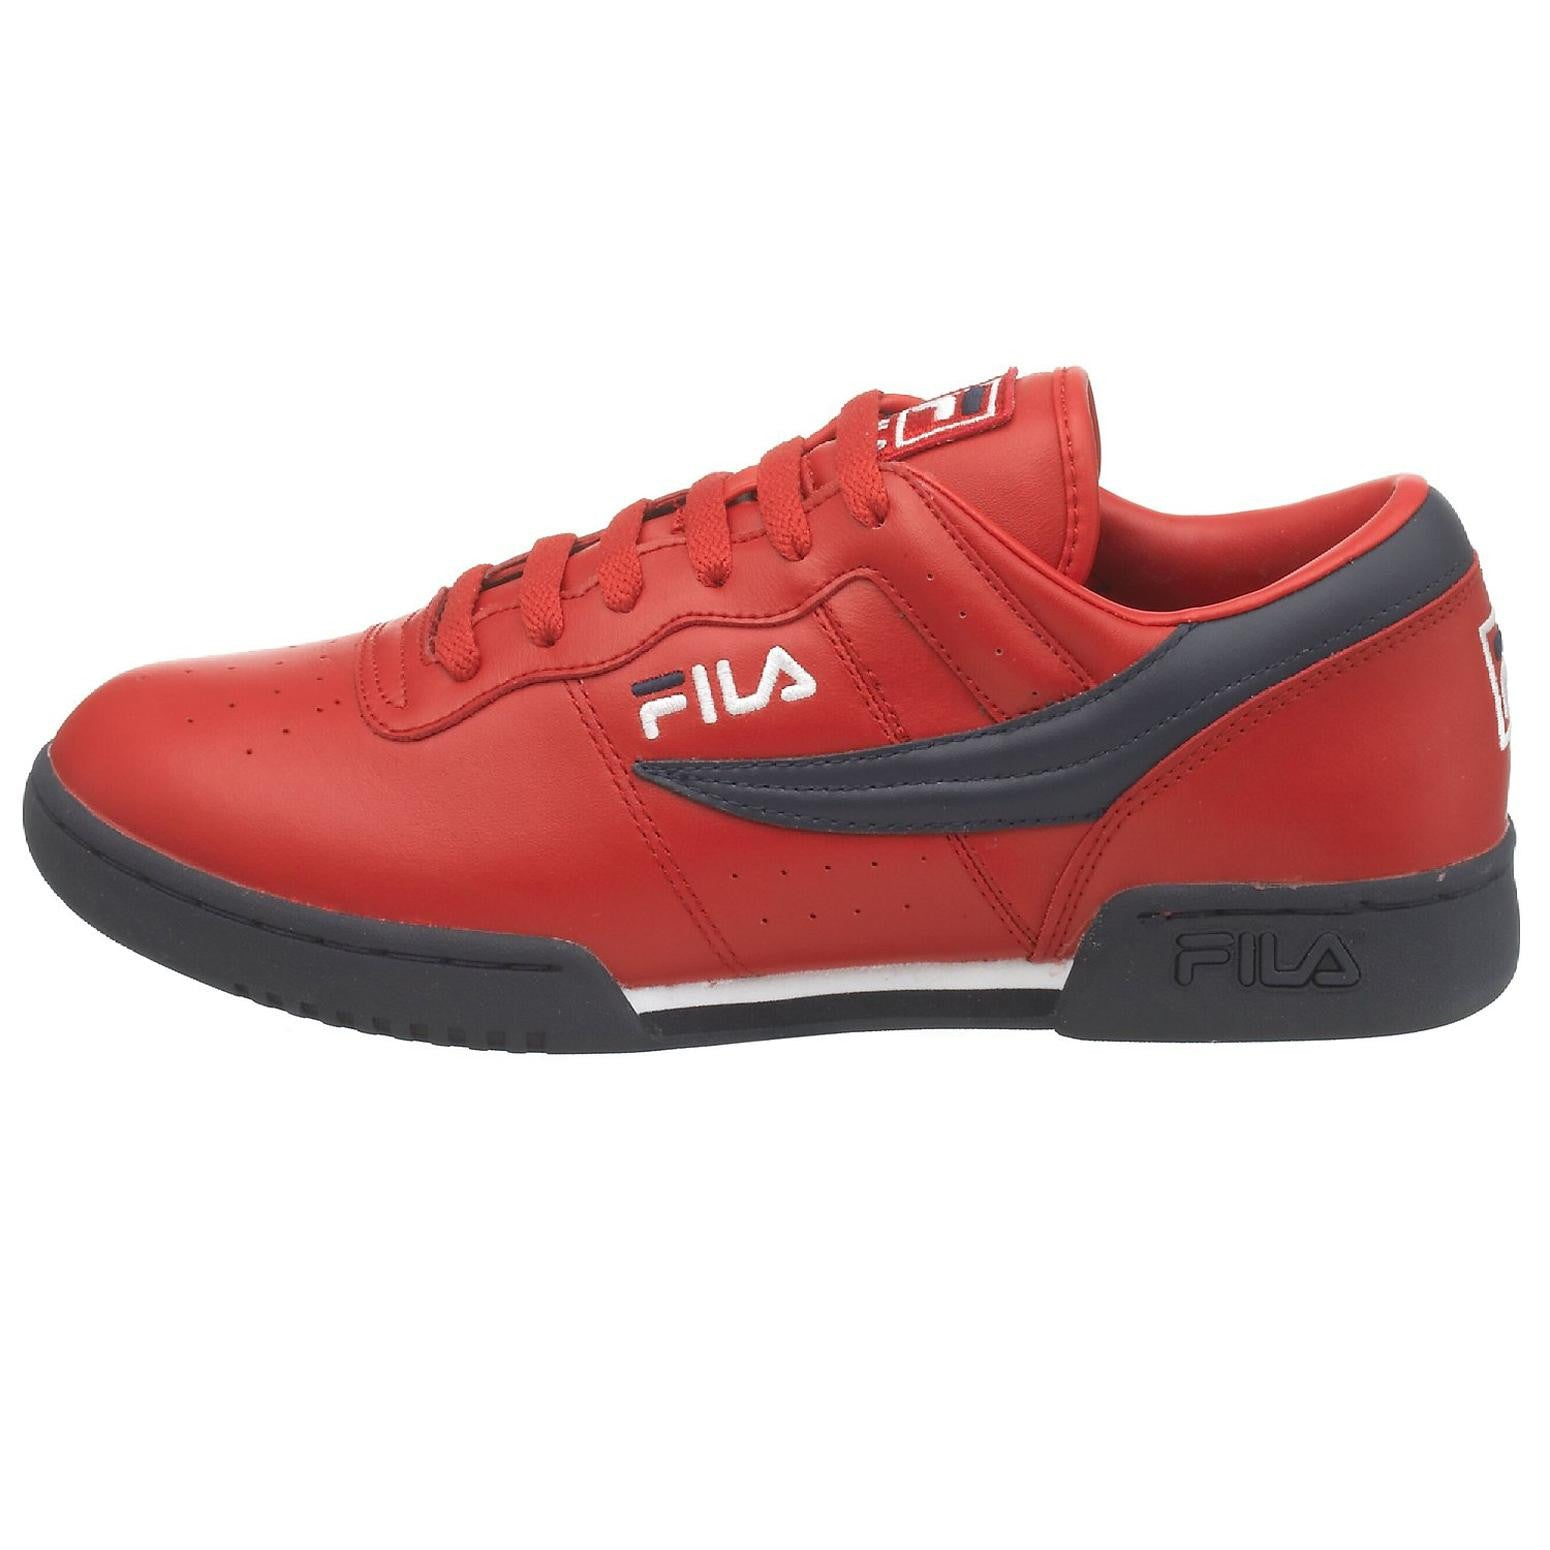 Fila Original Tennis Red